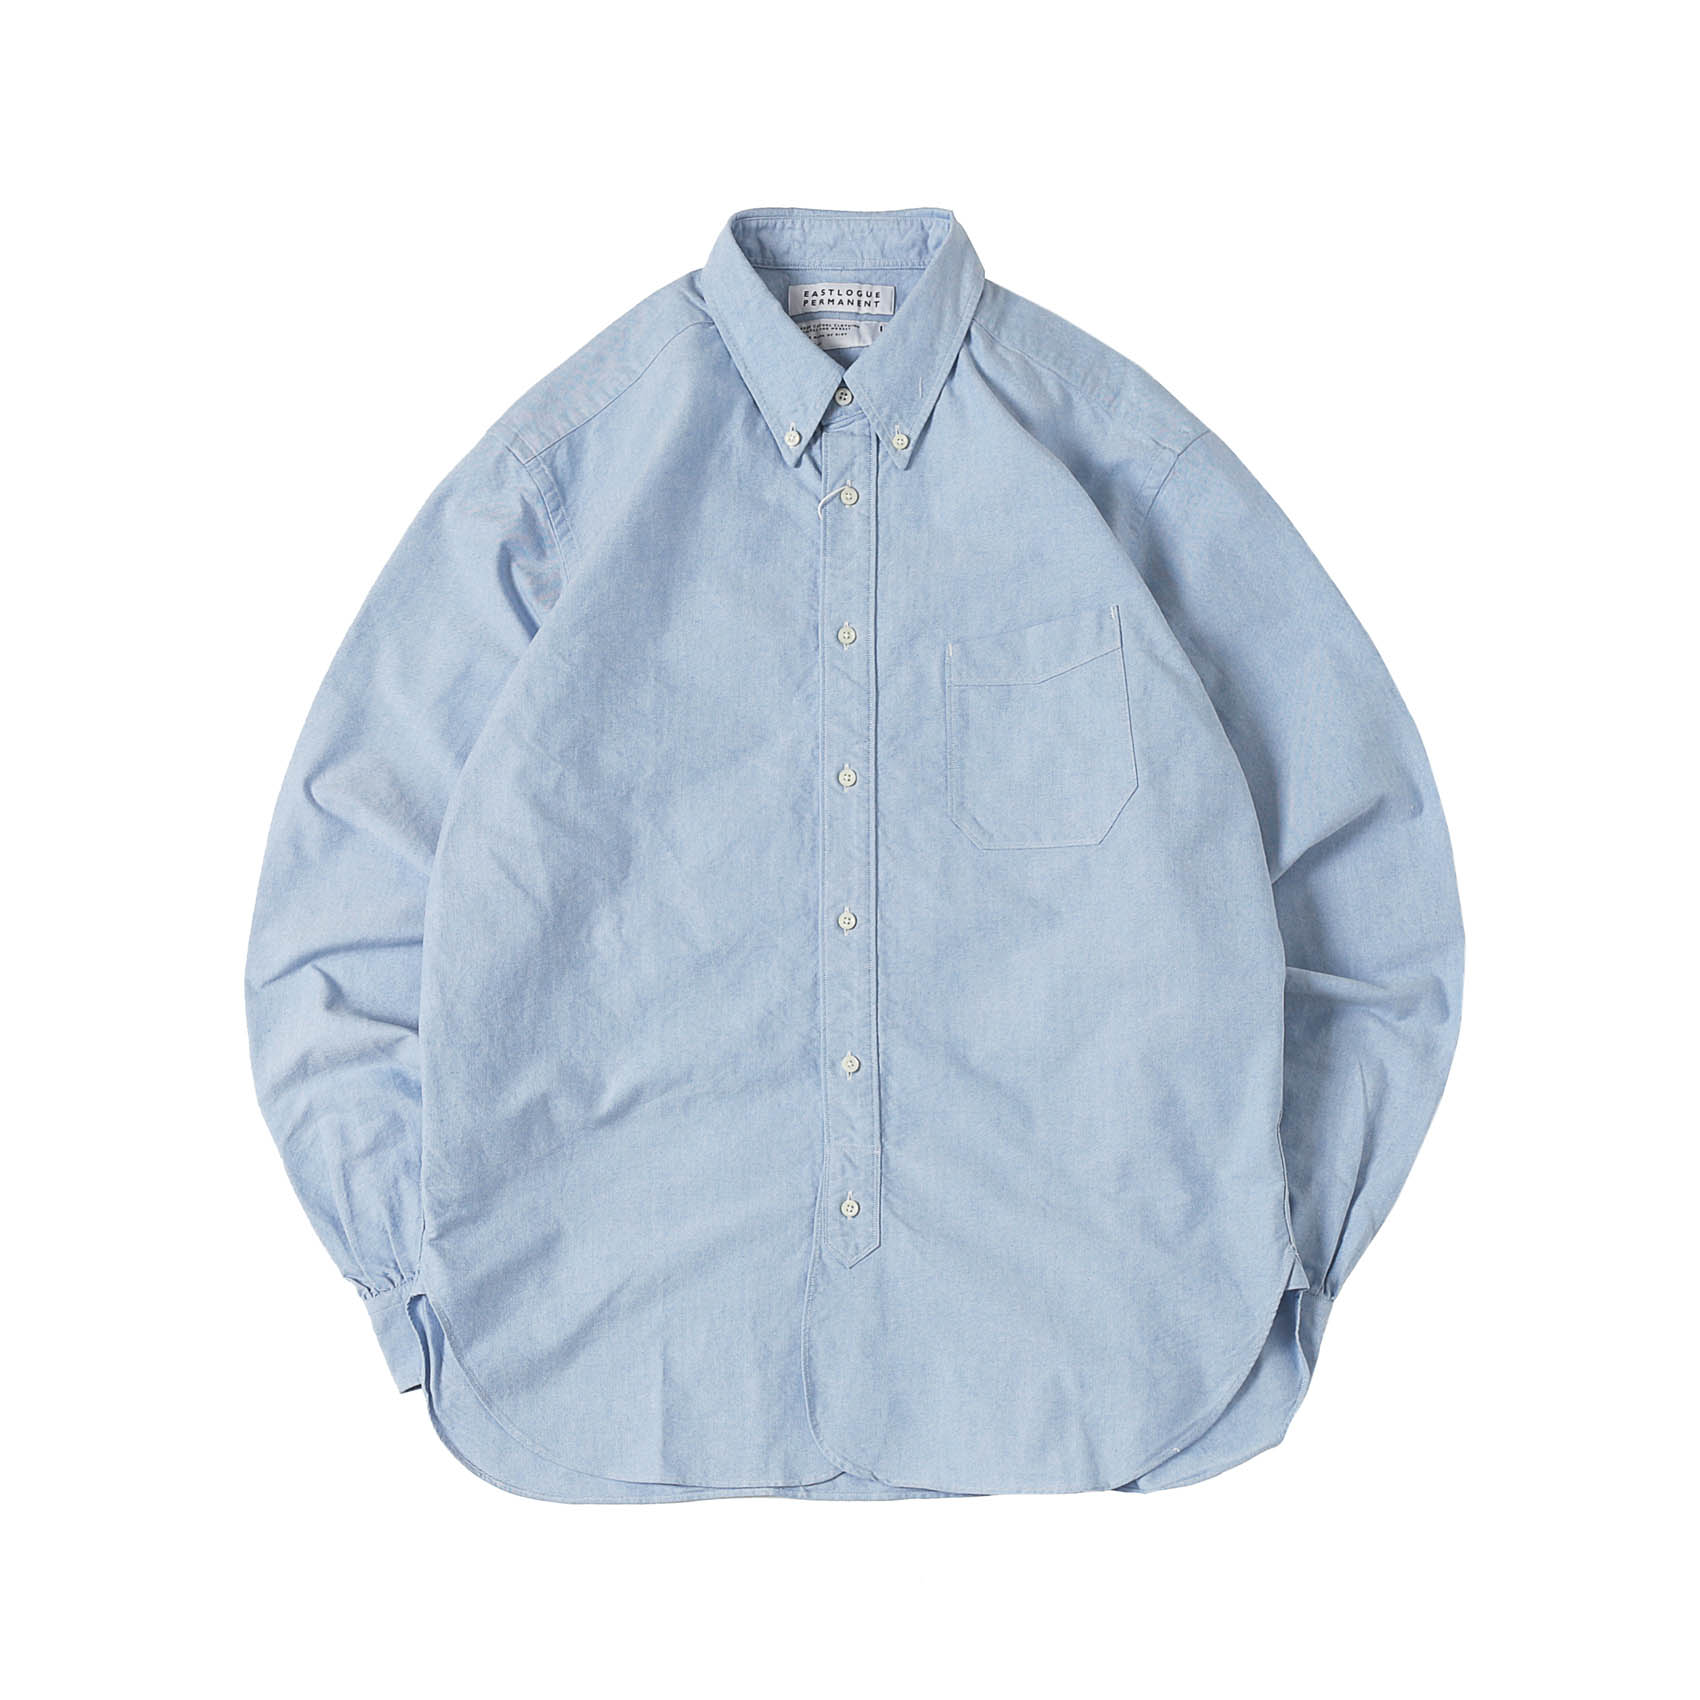 B.D REGULAR SHIRTS - BLUE OXFORD